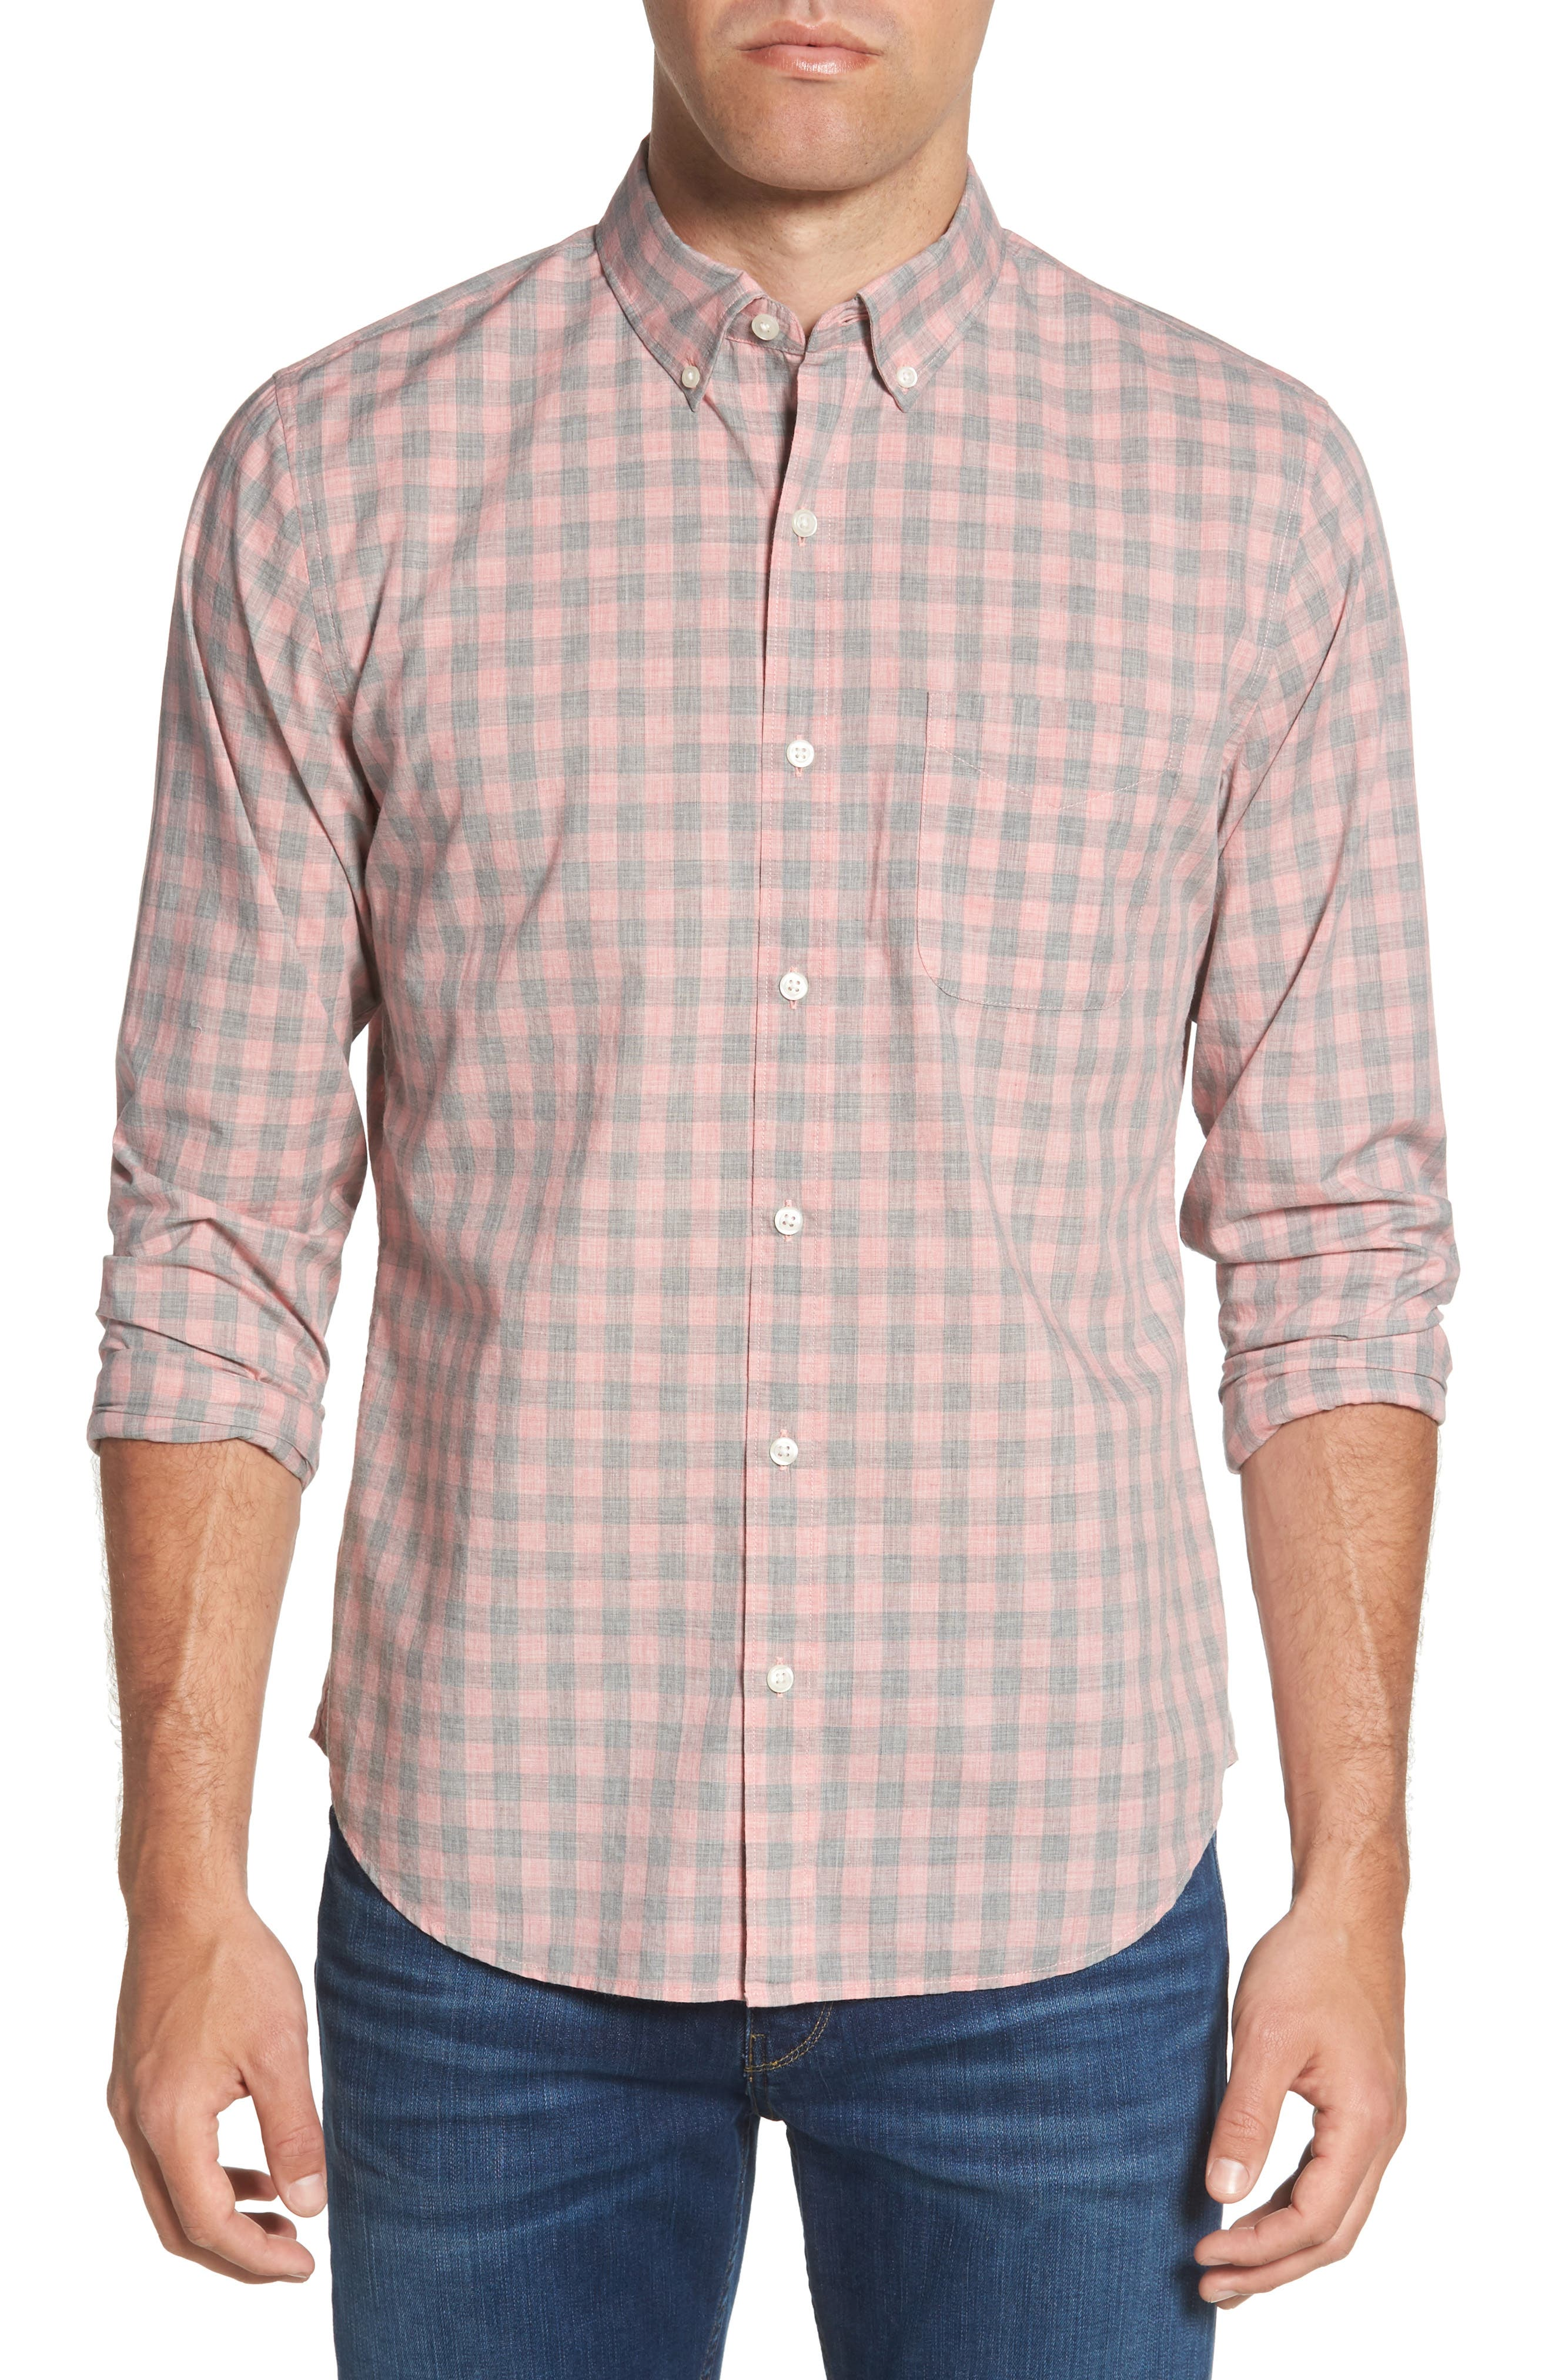 Summerweight Slim Fit Gingham Sport Shirt,                             Main thumbnail 1, color,                             Pine Gingham - Heather Rose